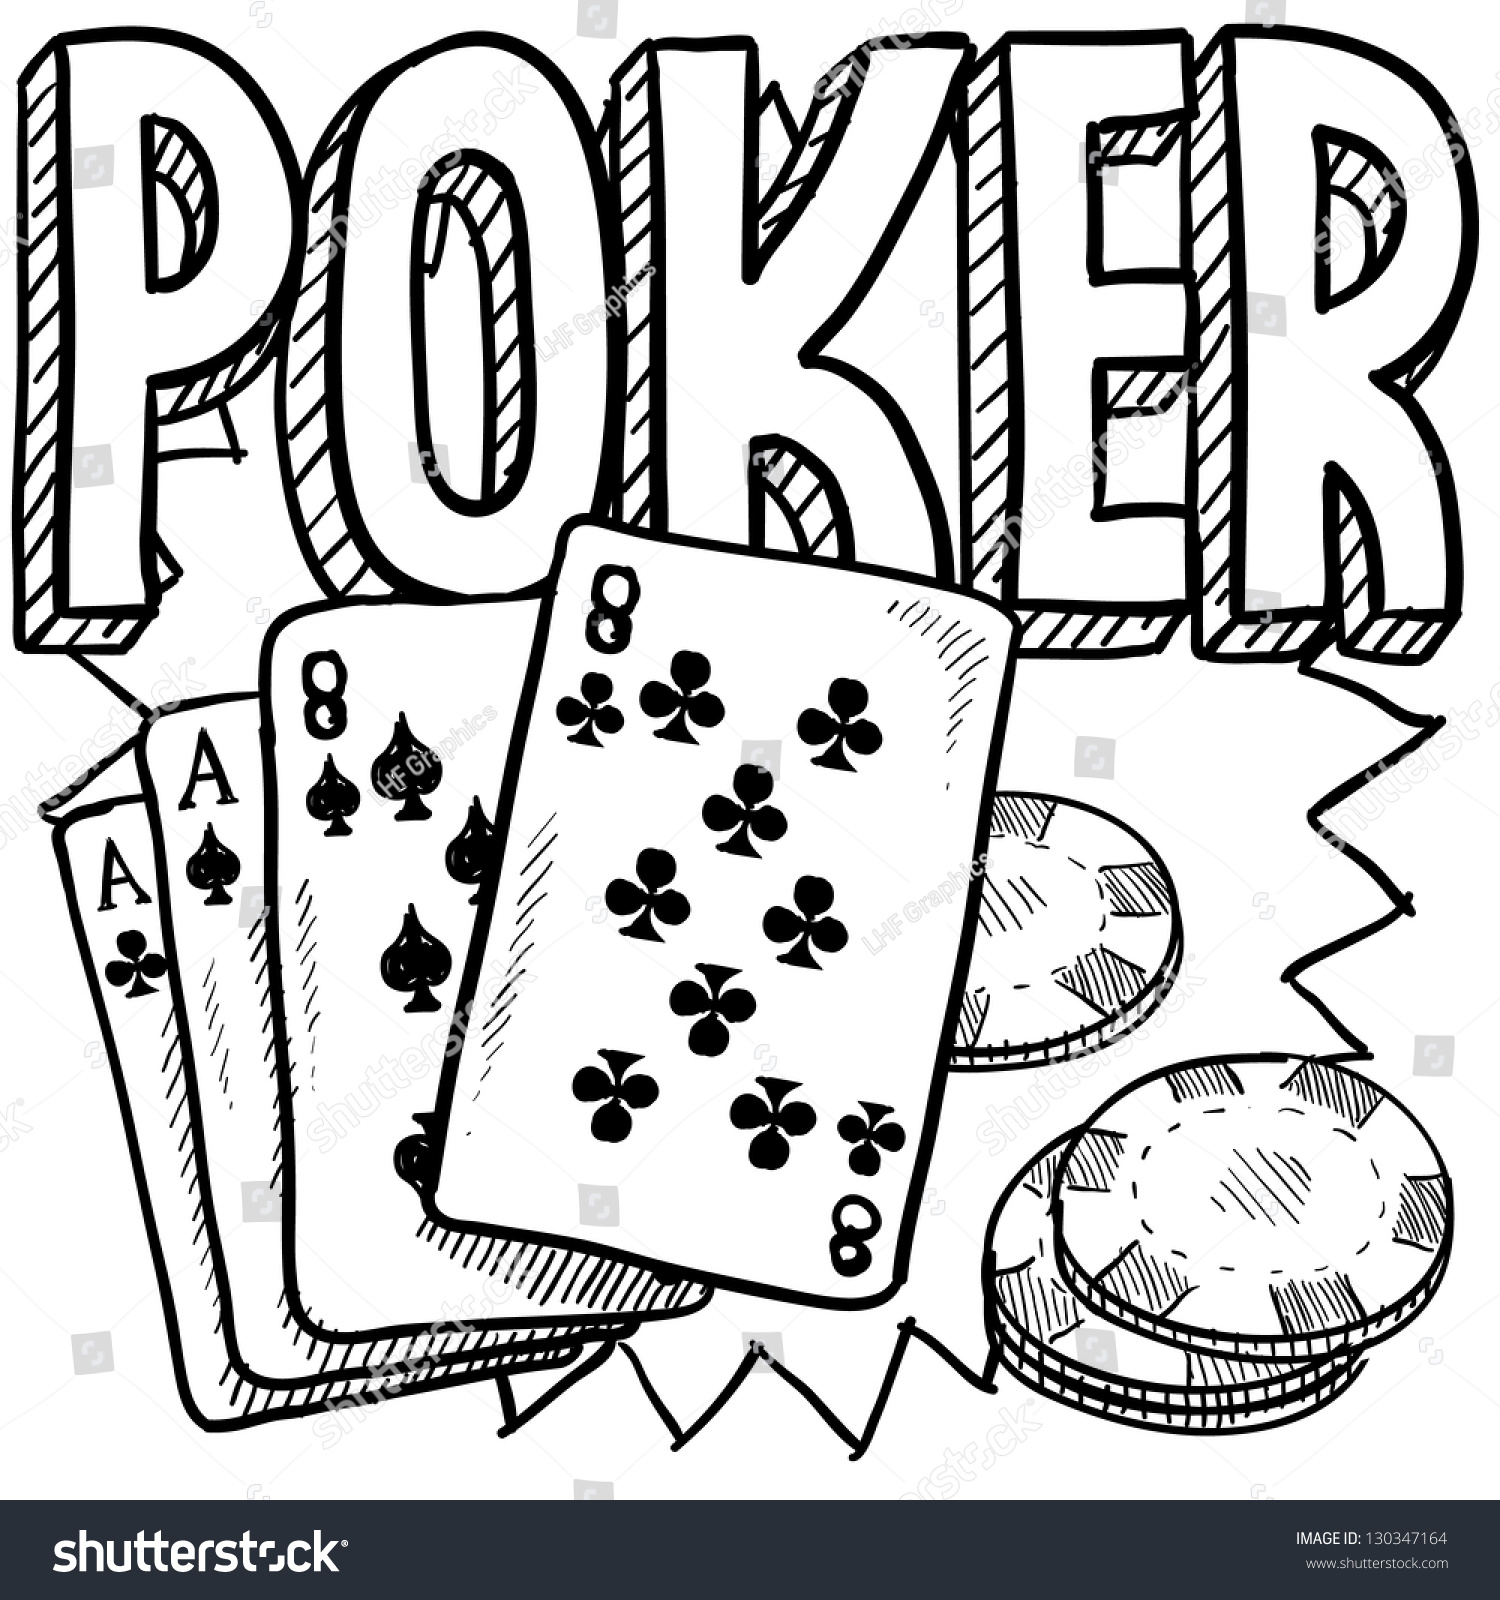 doodle style poker card game illustration stock vector royalty free Early 1900S Games doodle style poker card game illustration in vector format includes text cards and